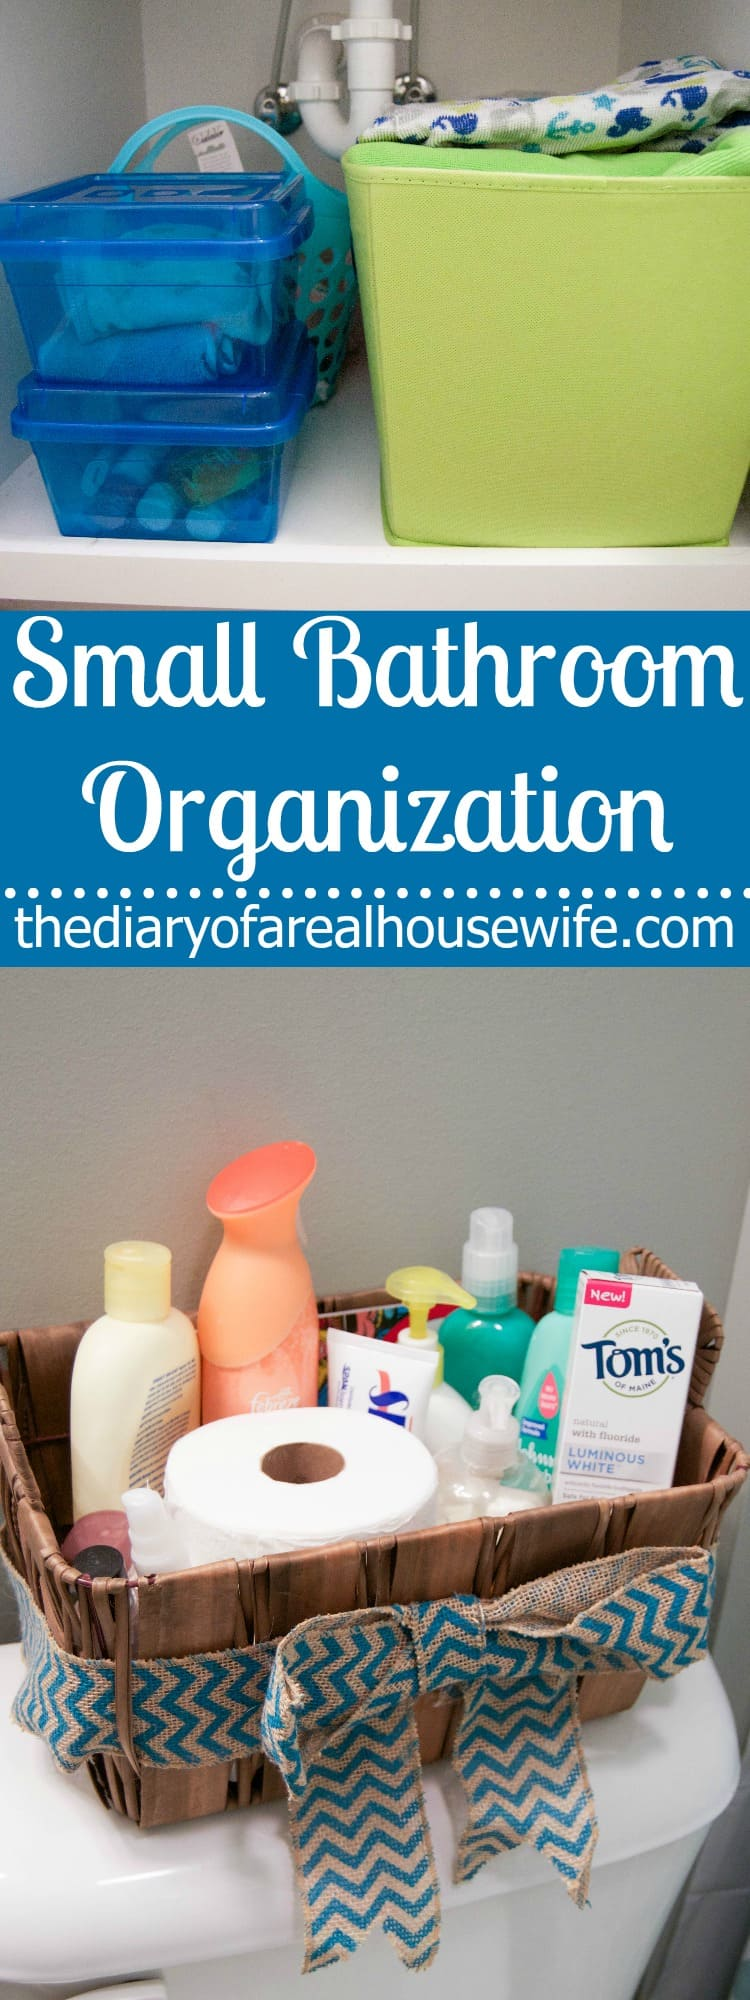 small-bathroom-organization